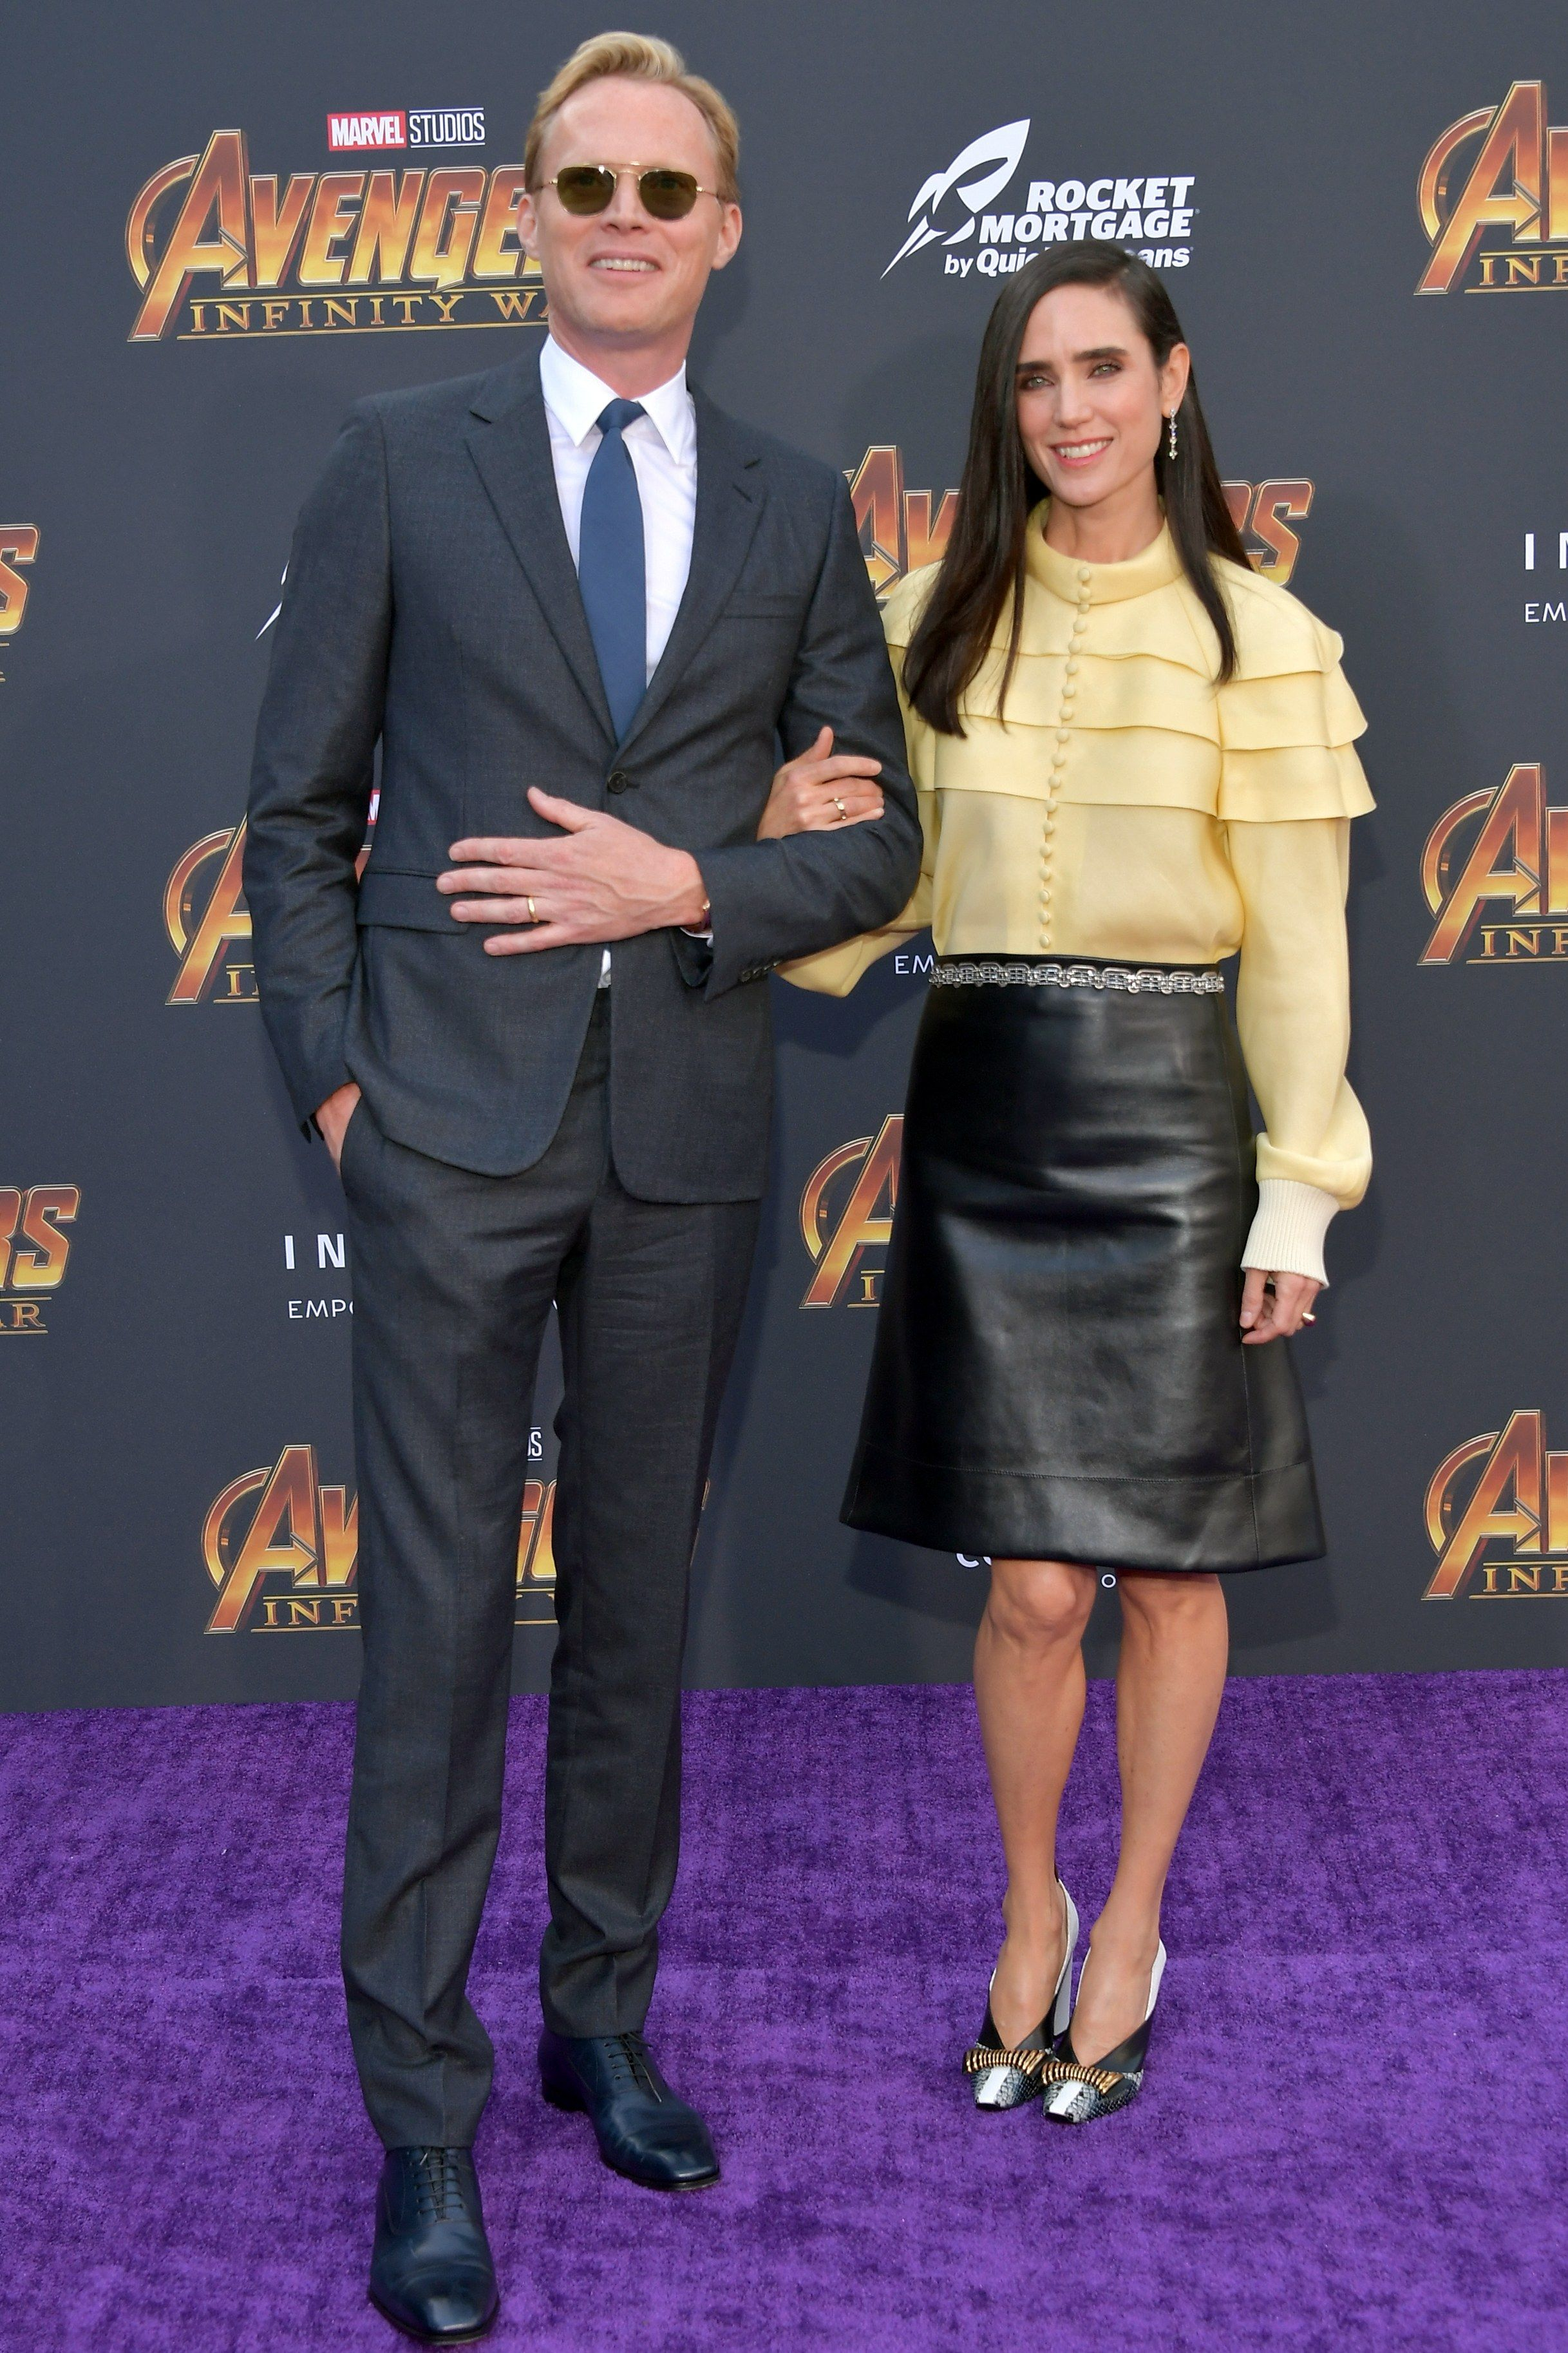 Forum on this topic: Paul Bettanys Suit At The Avengers Event , paul-bettanys-suit-at-the-avengers-event/